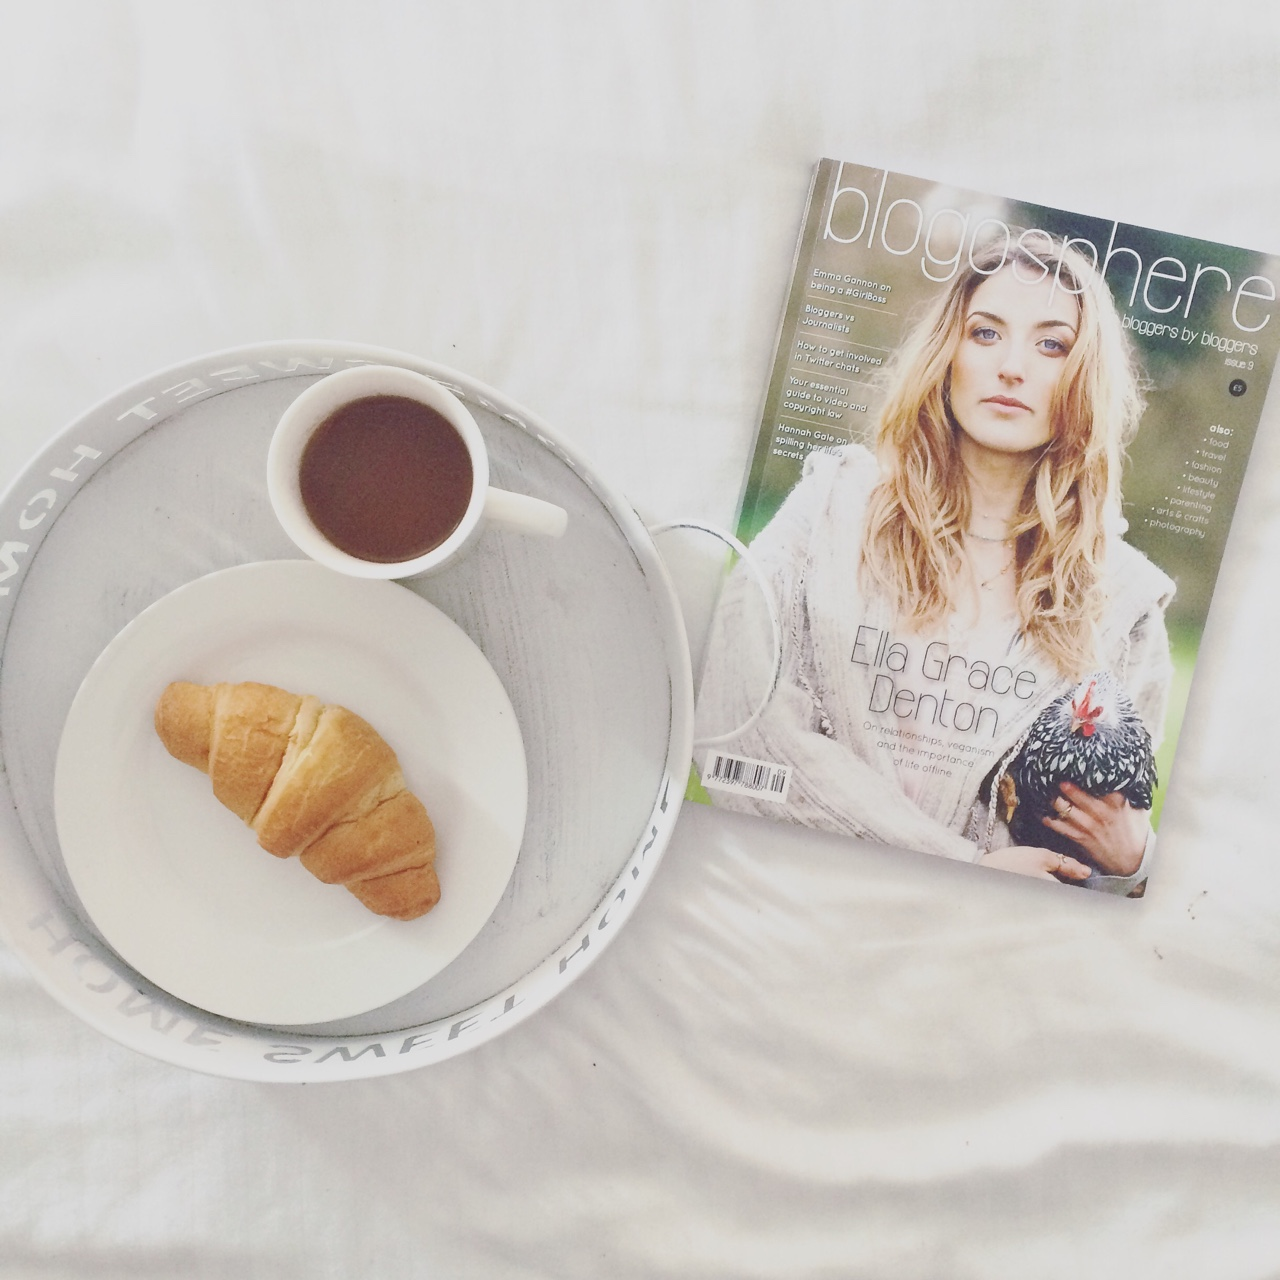 tea, croissant, magazine, tray, bed, bliss